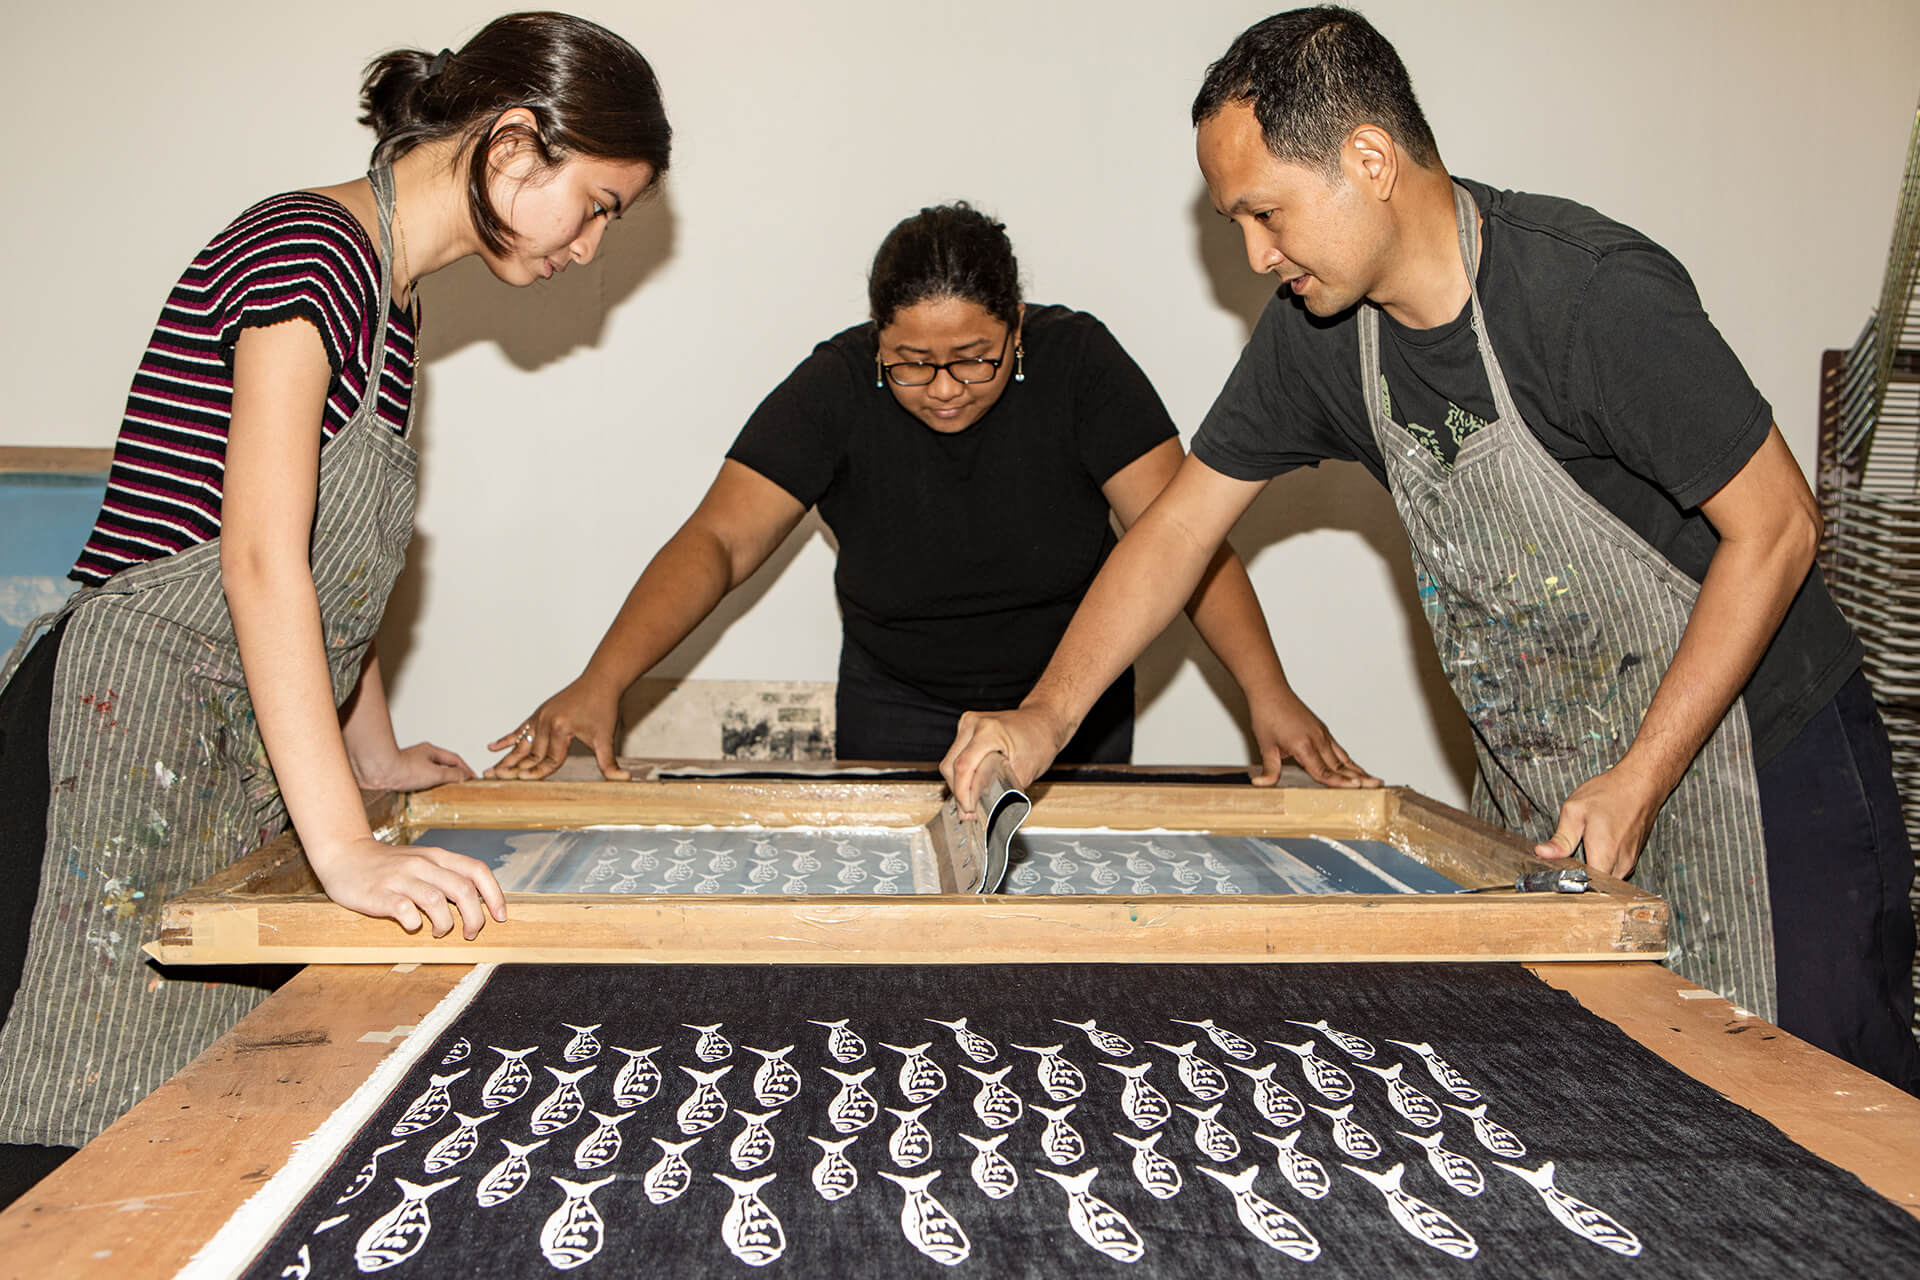 Andre Salud leads a screen printing workshop at Hocus Manila